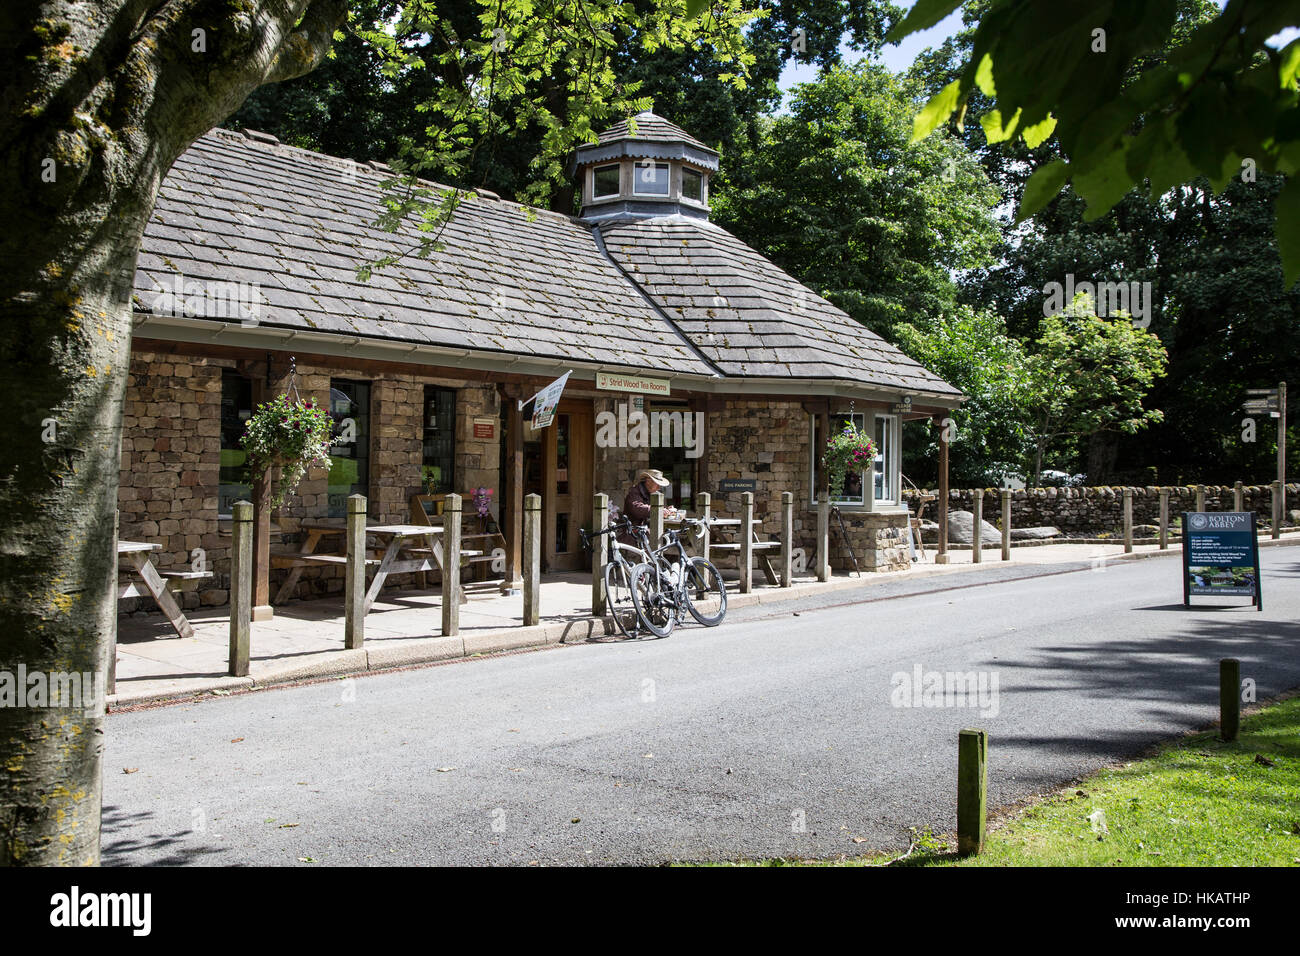 Entrance & cafe at The Strid car park, Bolton Abbey - Stock Image